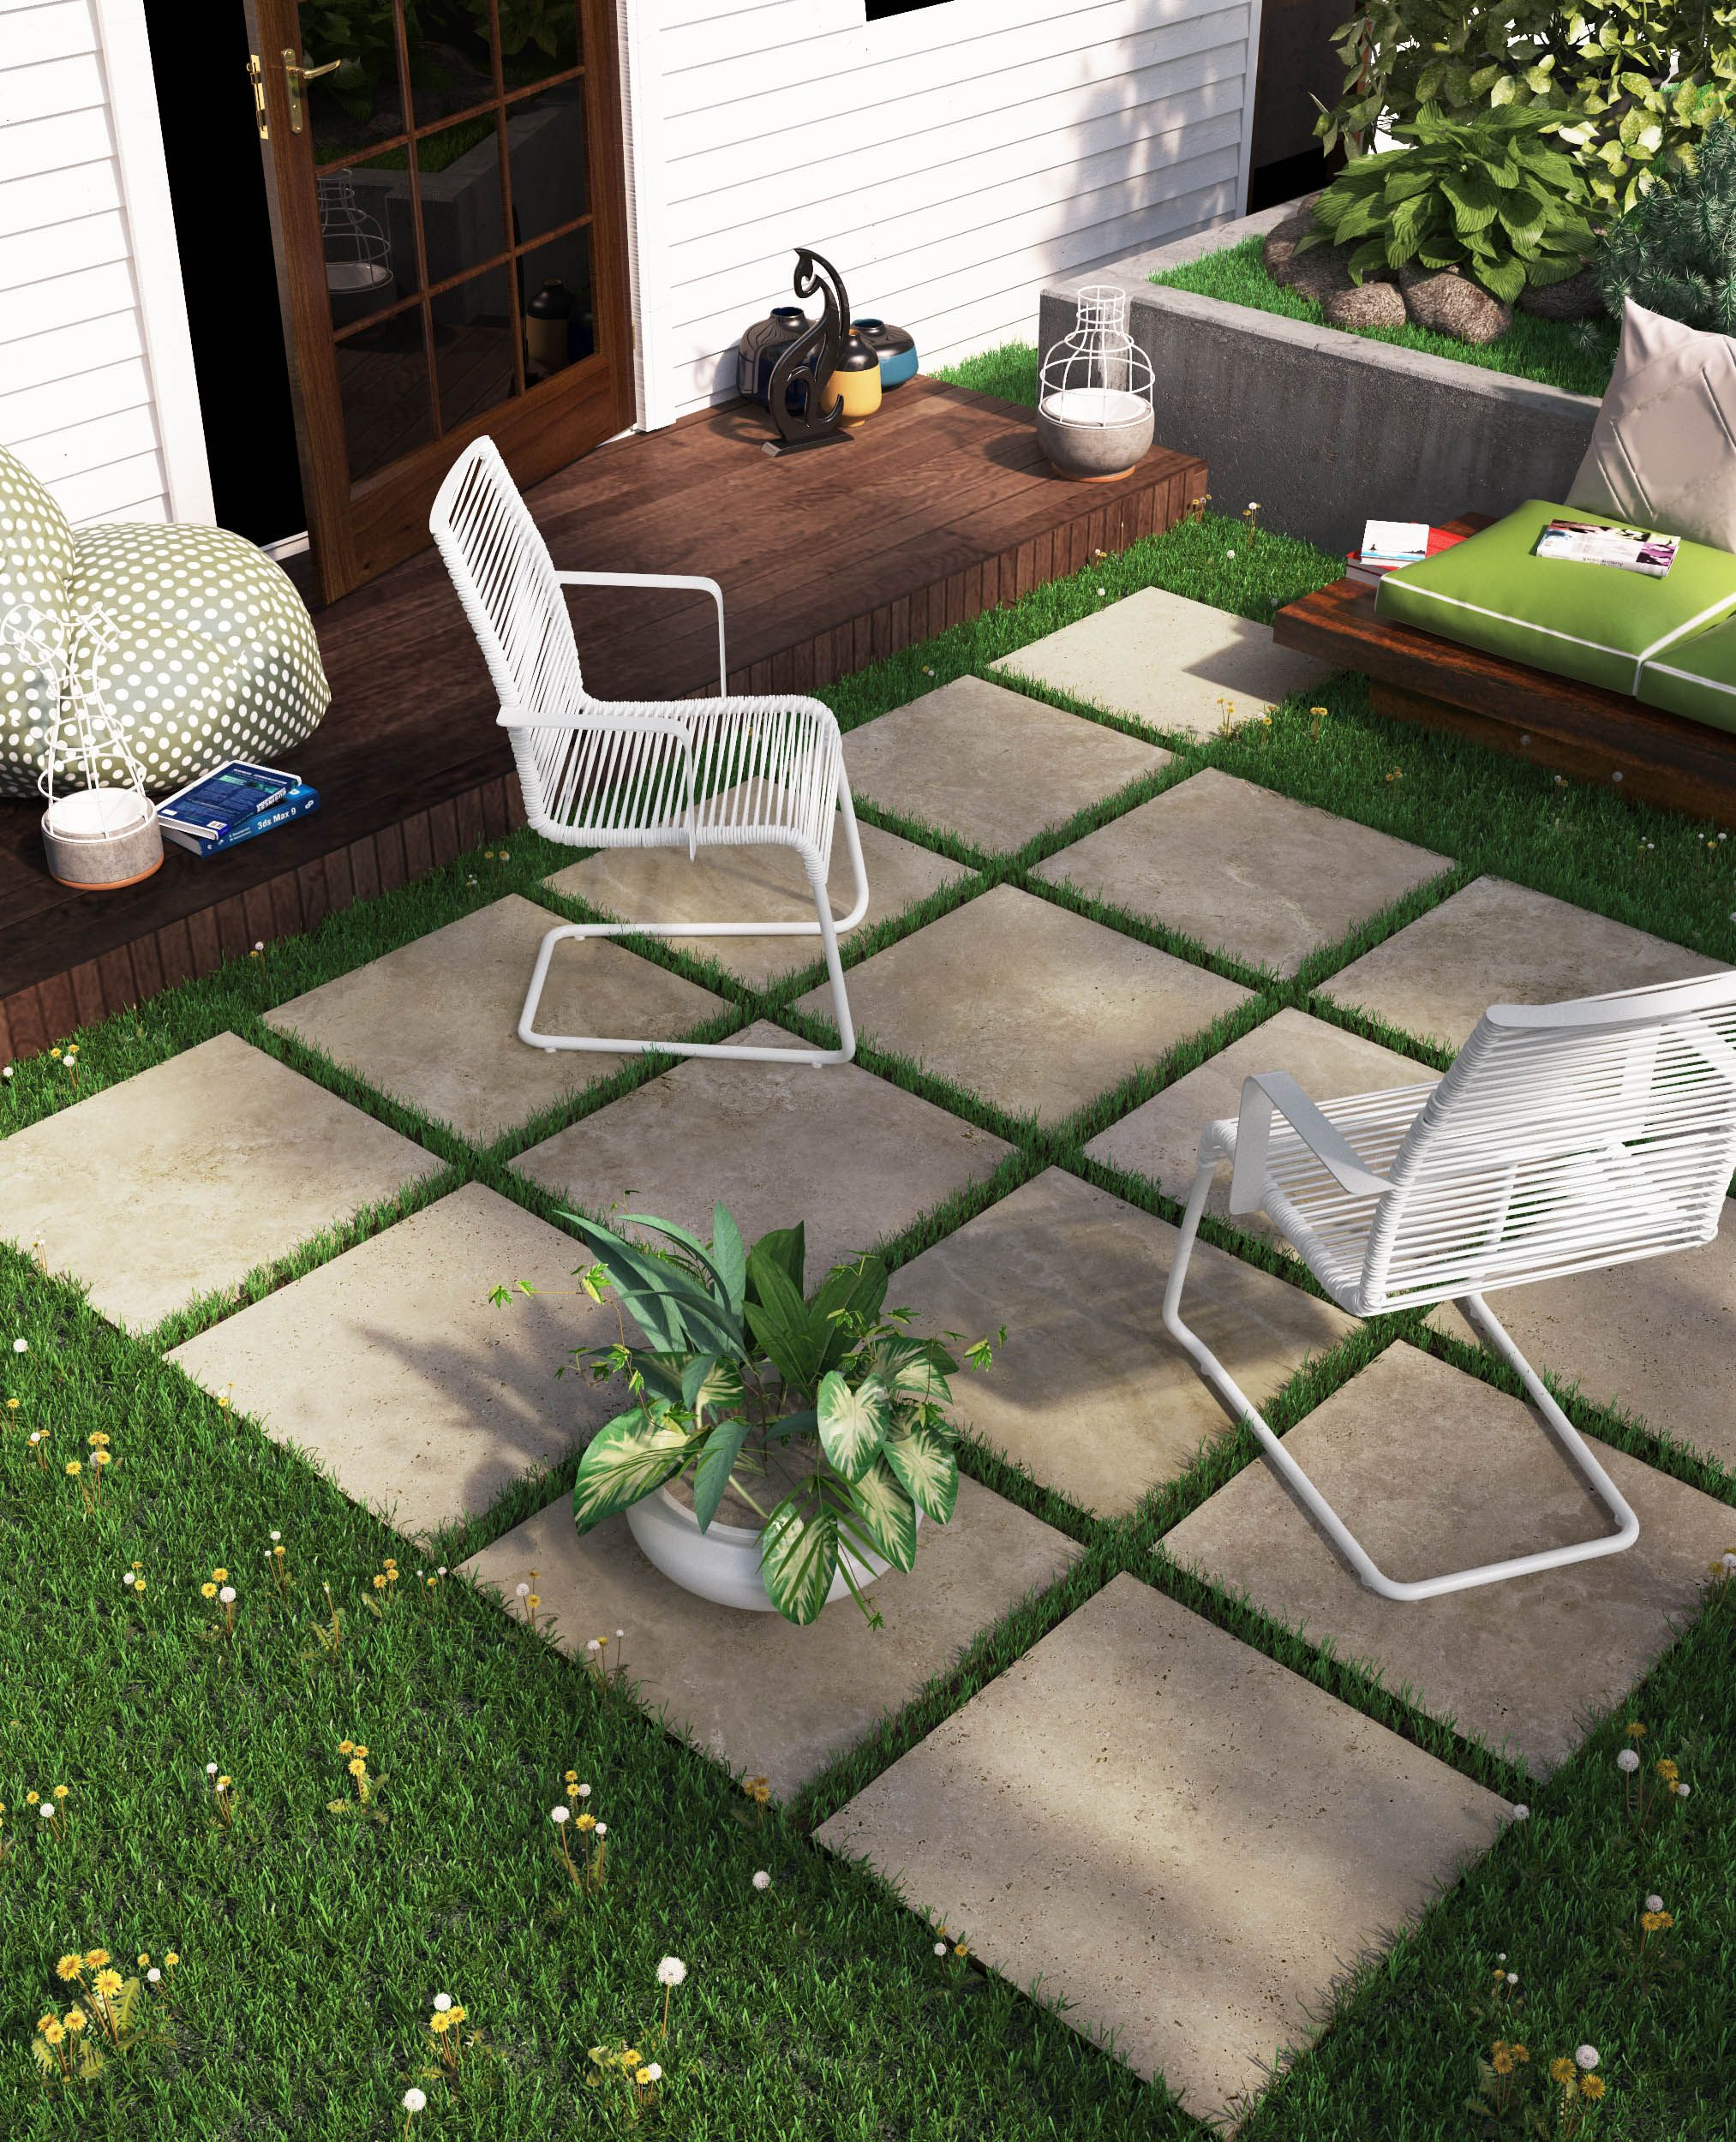 Outdoor patio, sitting area with porcelain patio stones